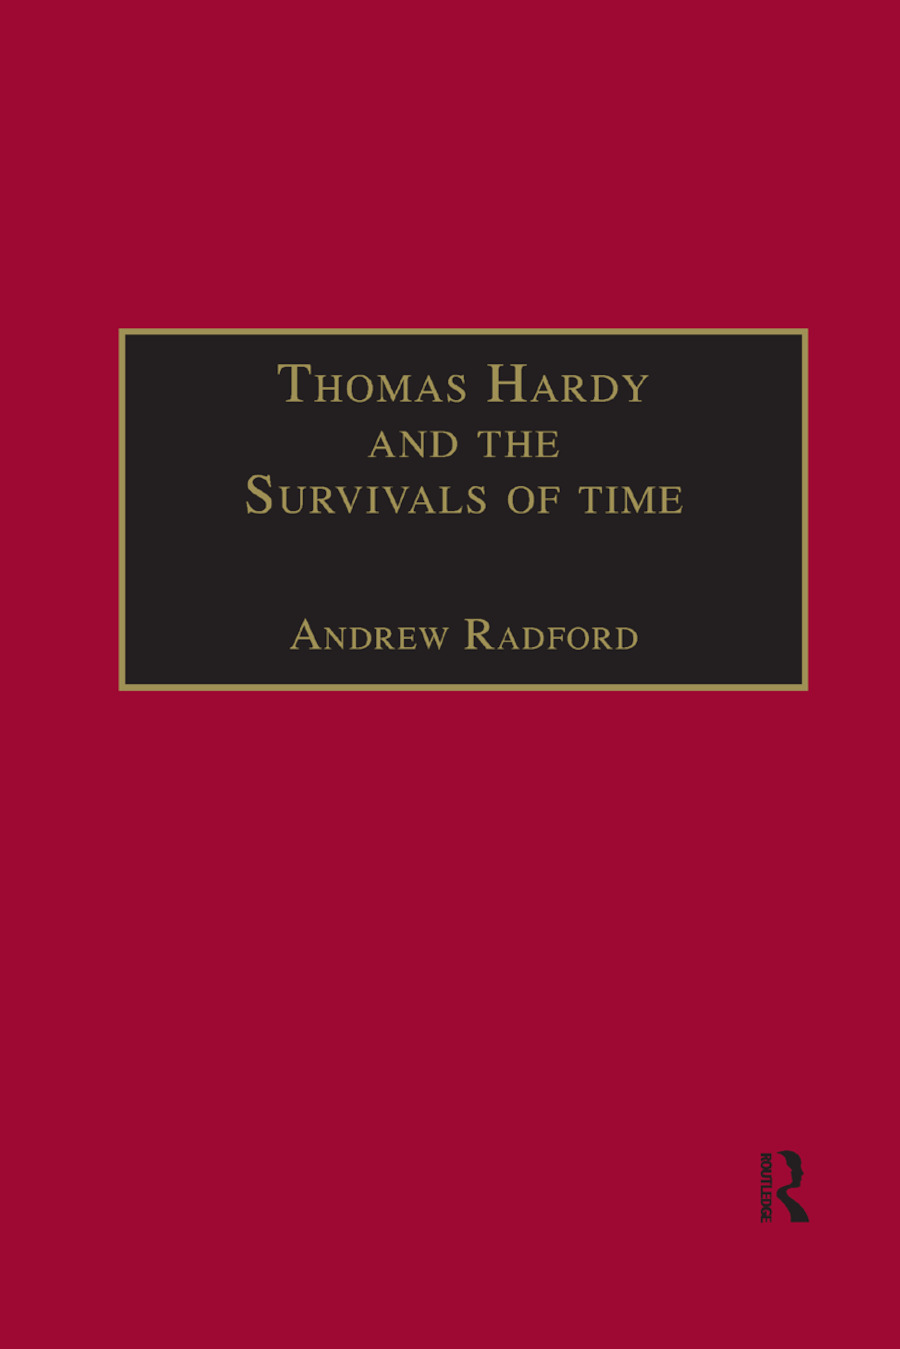 Thomas Hardy and the Survivals of Time book cover